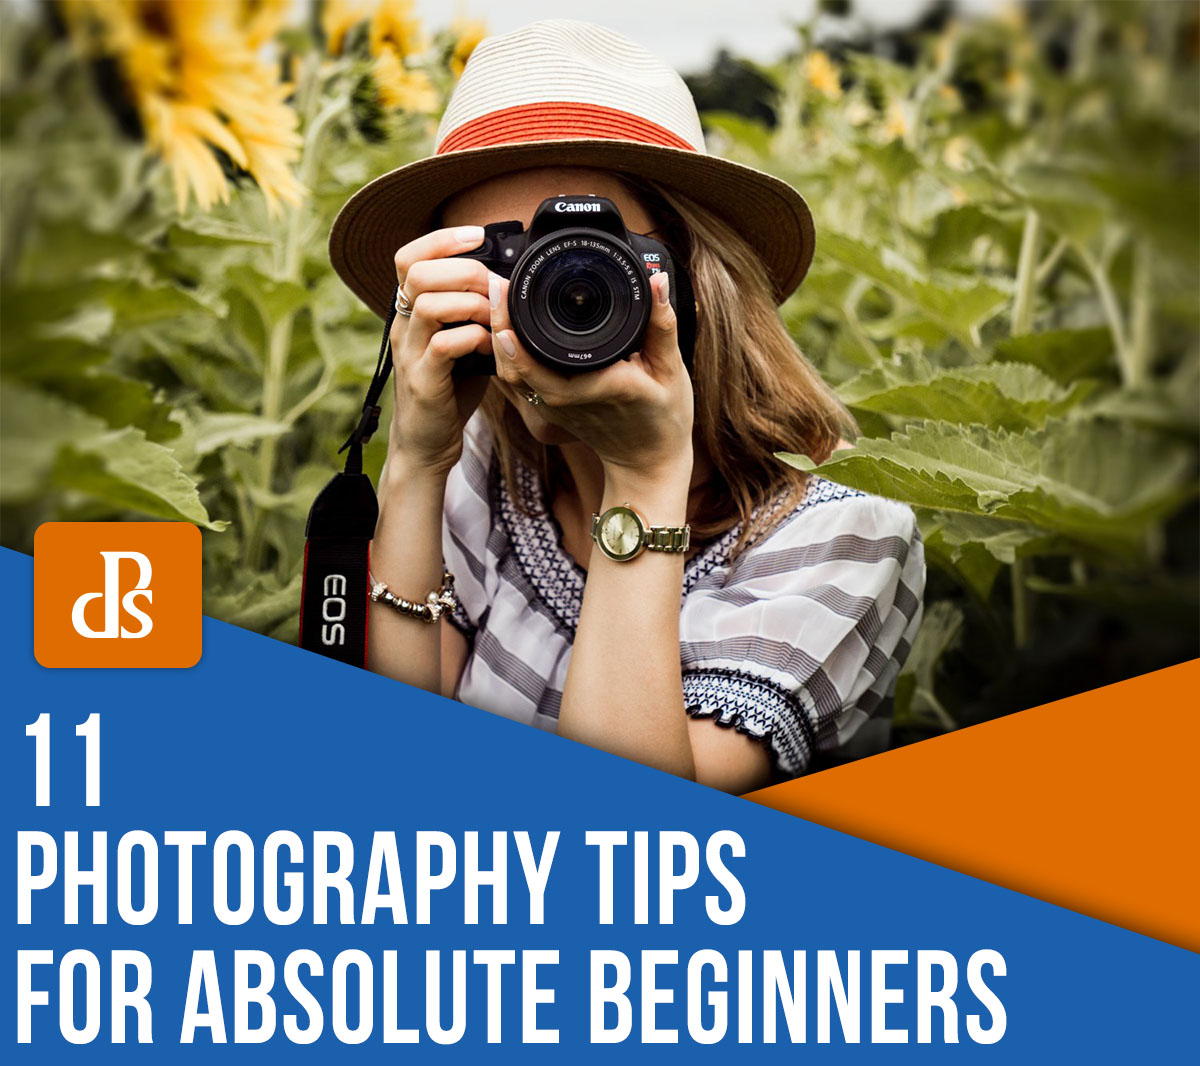 11 photography tips for absolute beginners